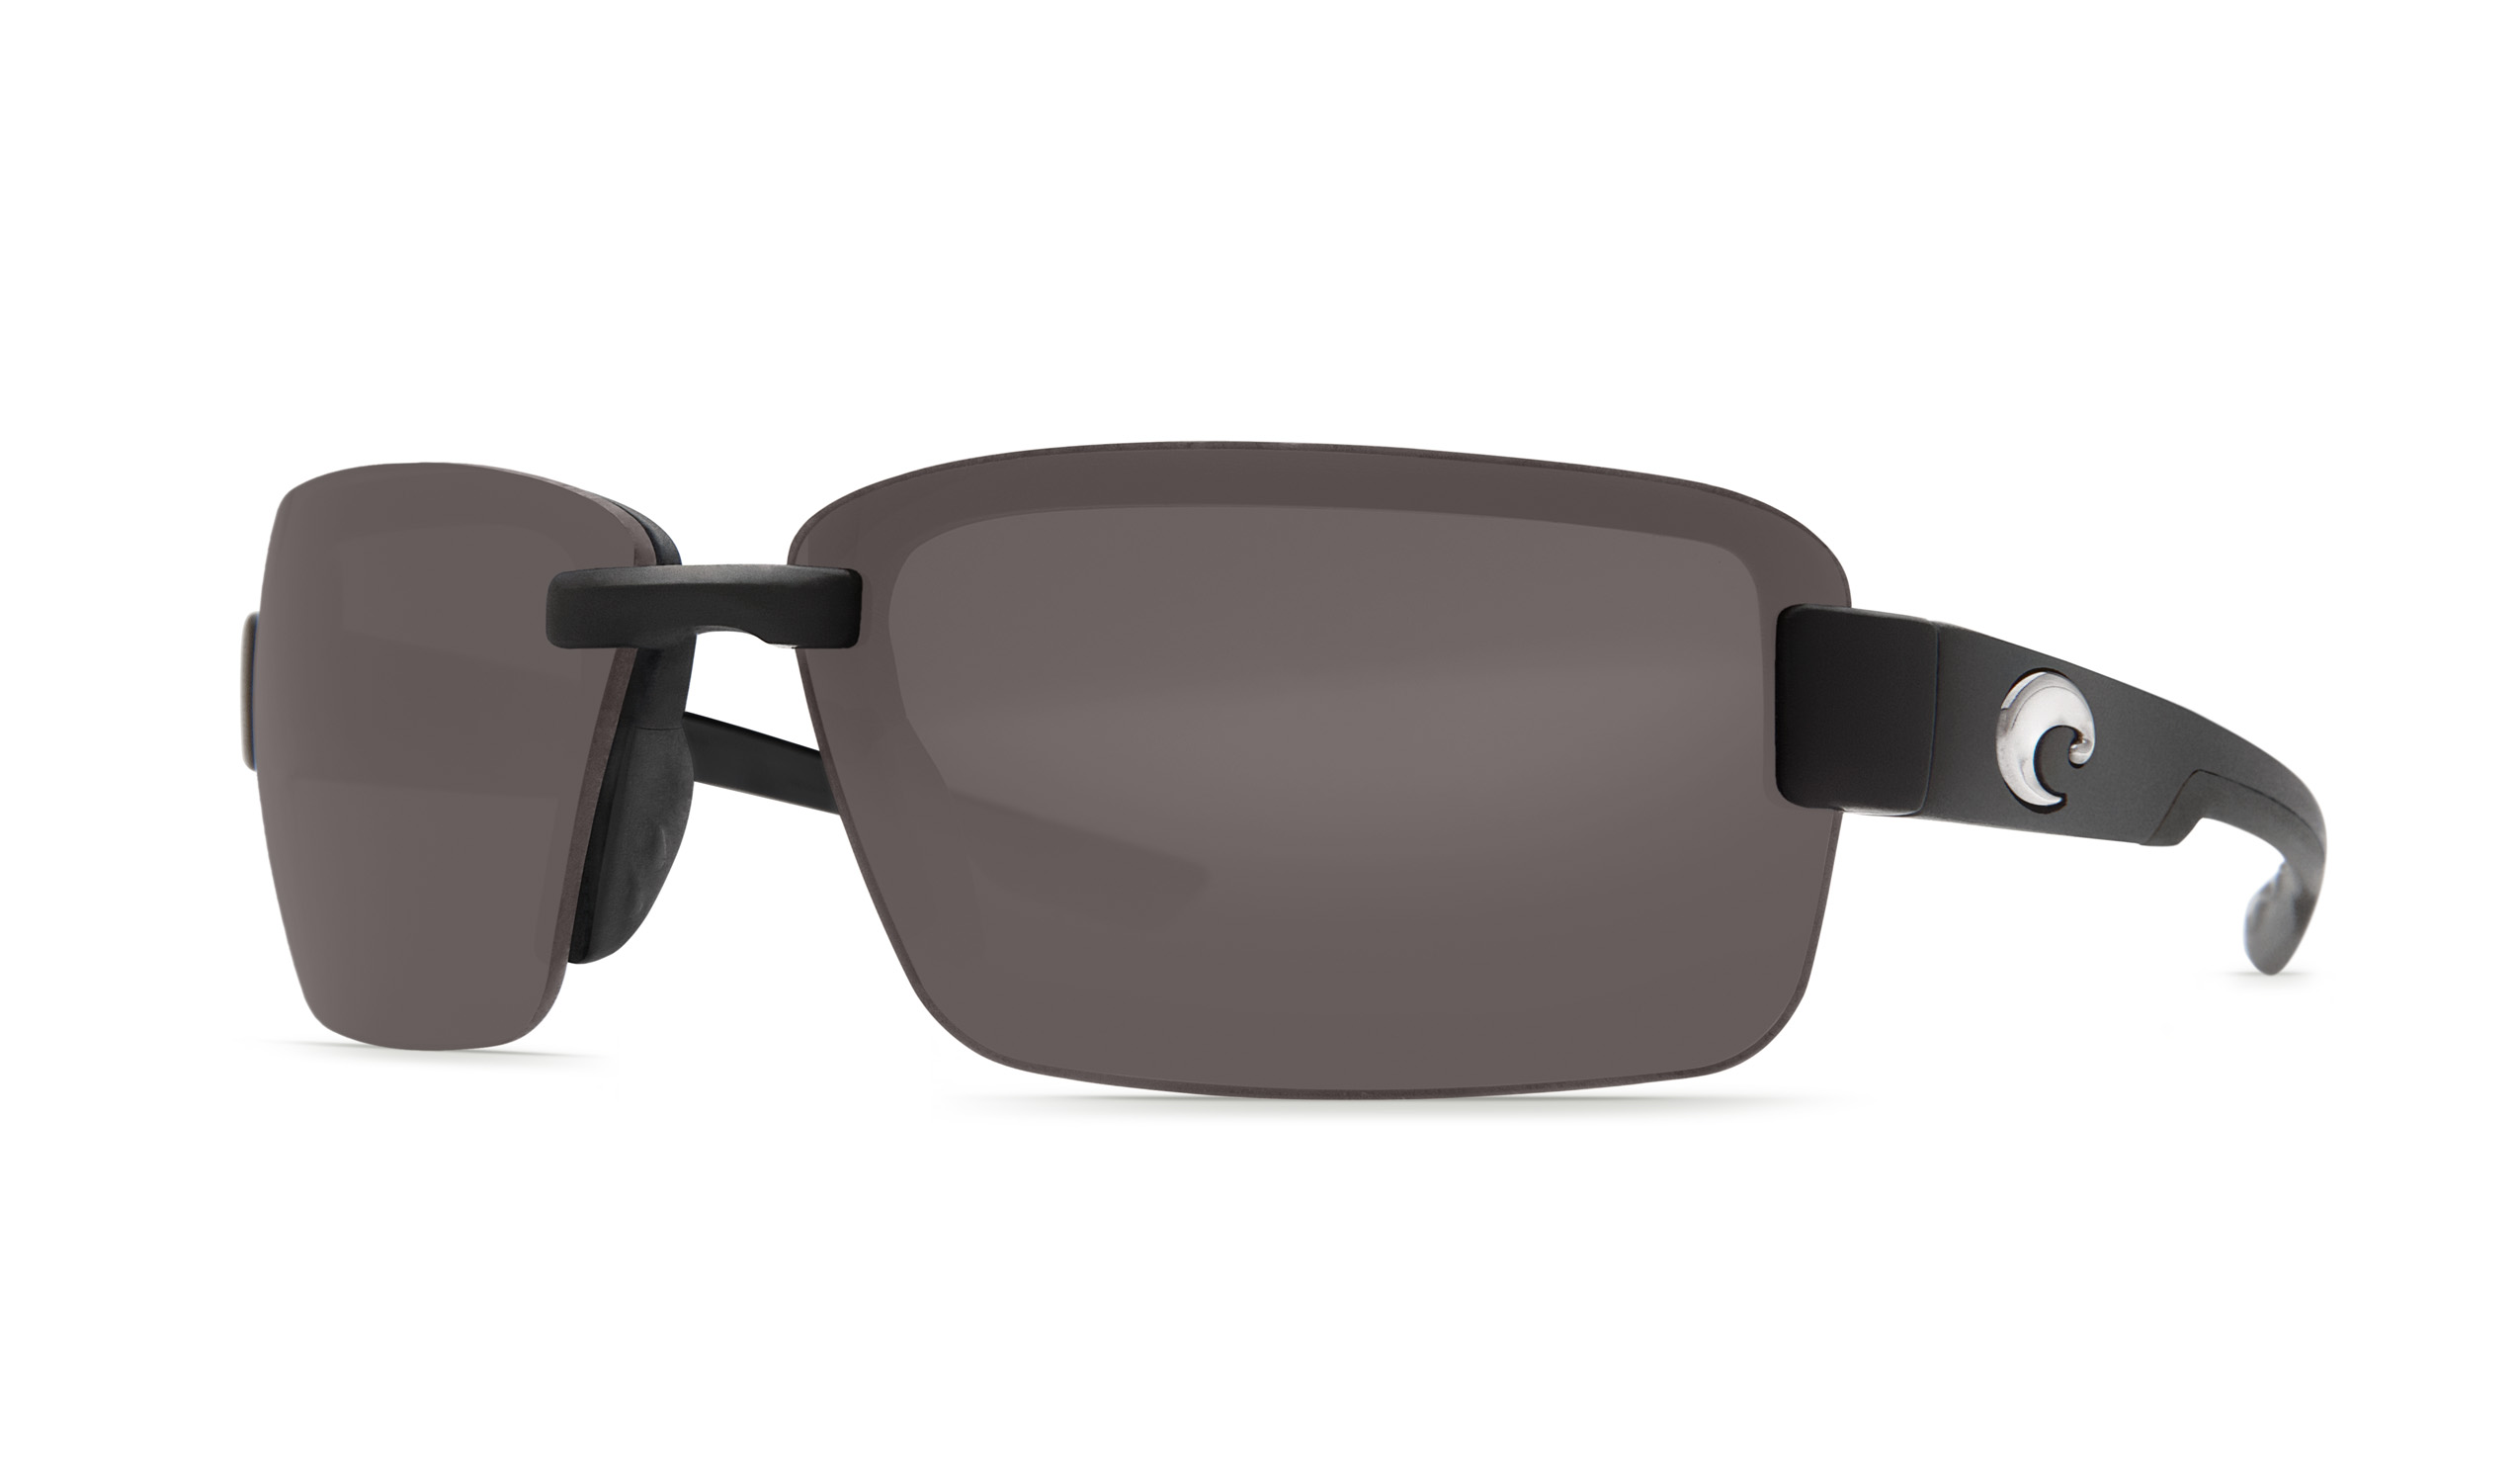 Costa's new Galveston offers a large square shape for optimal eye coverage on the water.